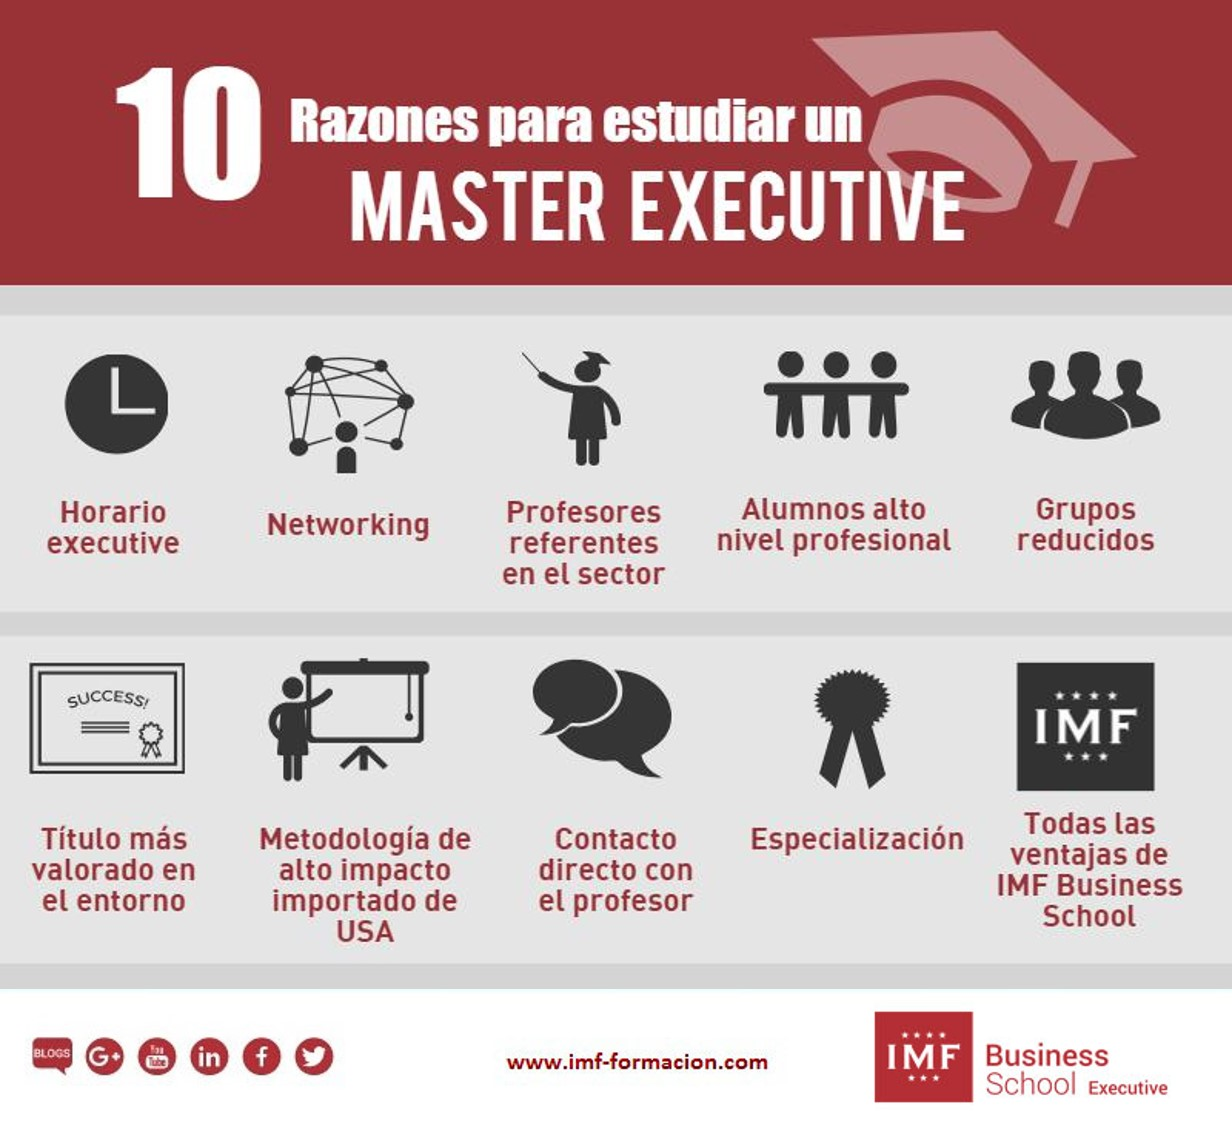 razones-master-executive ¿Por qué elegir un Master Executive?